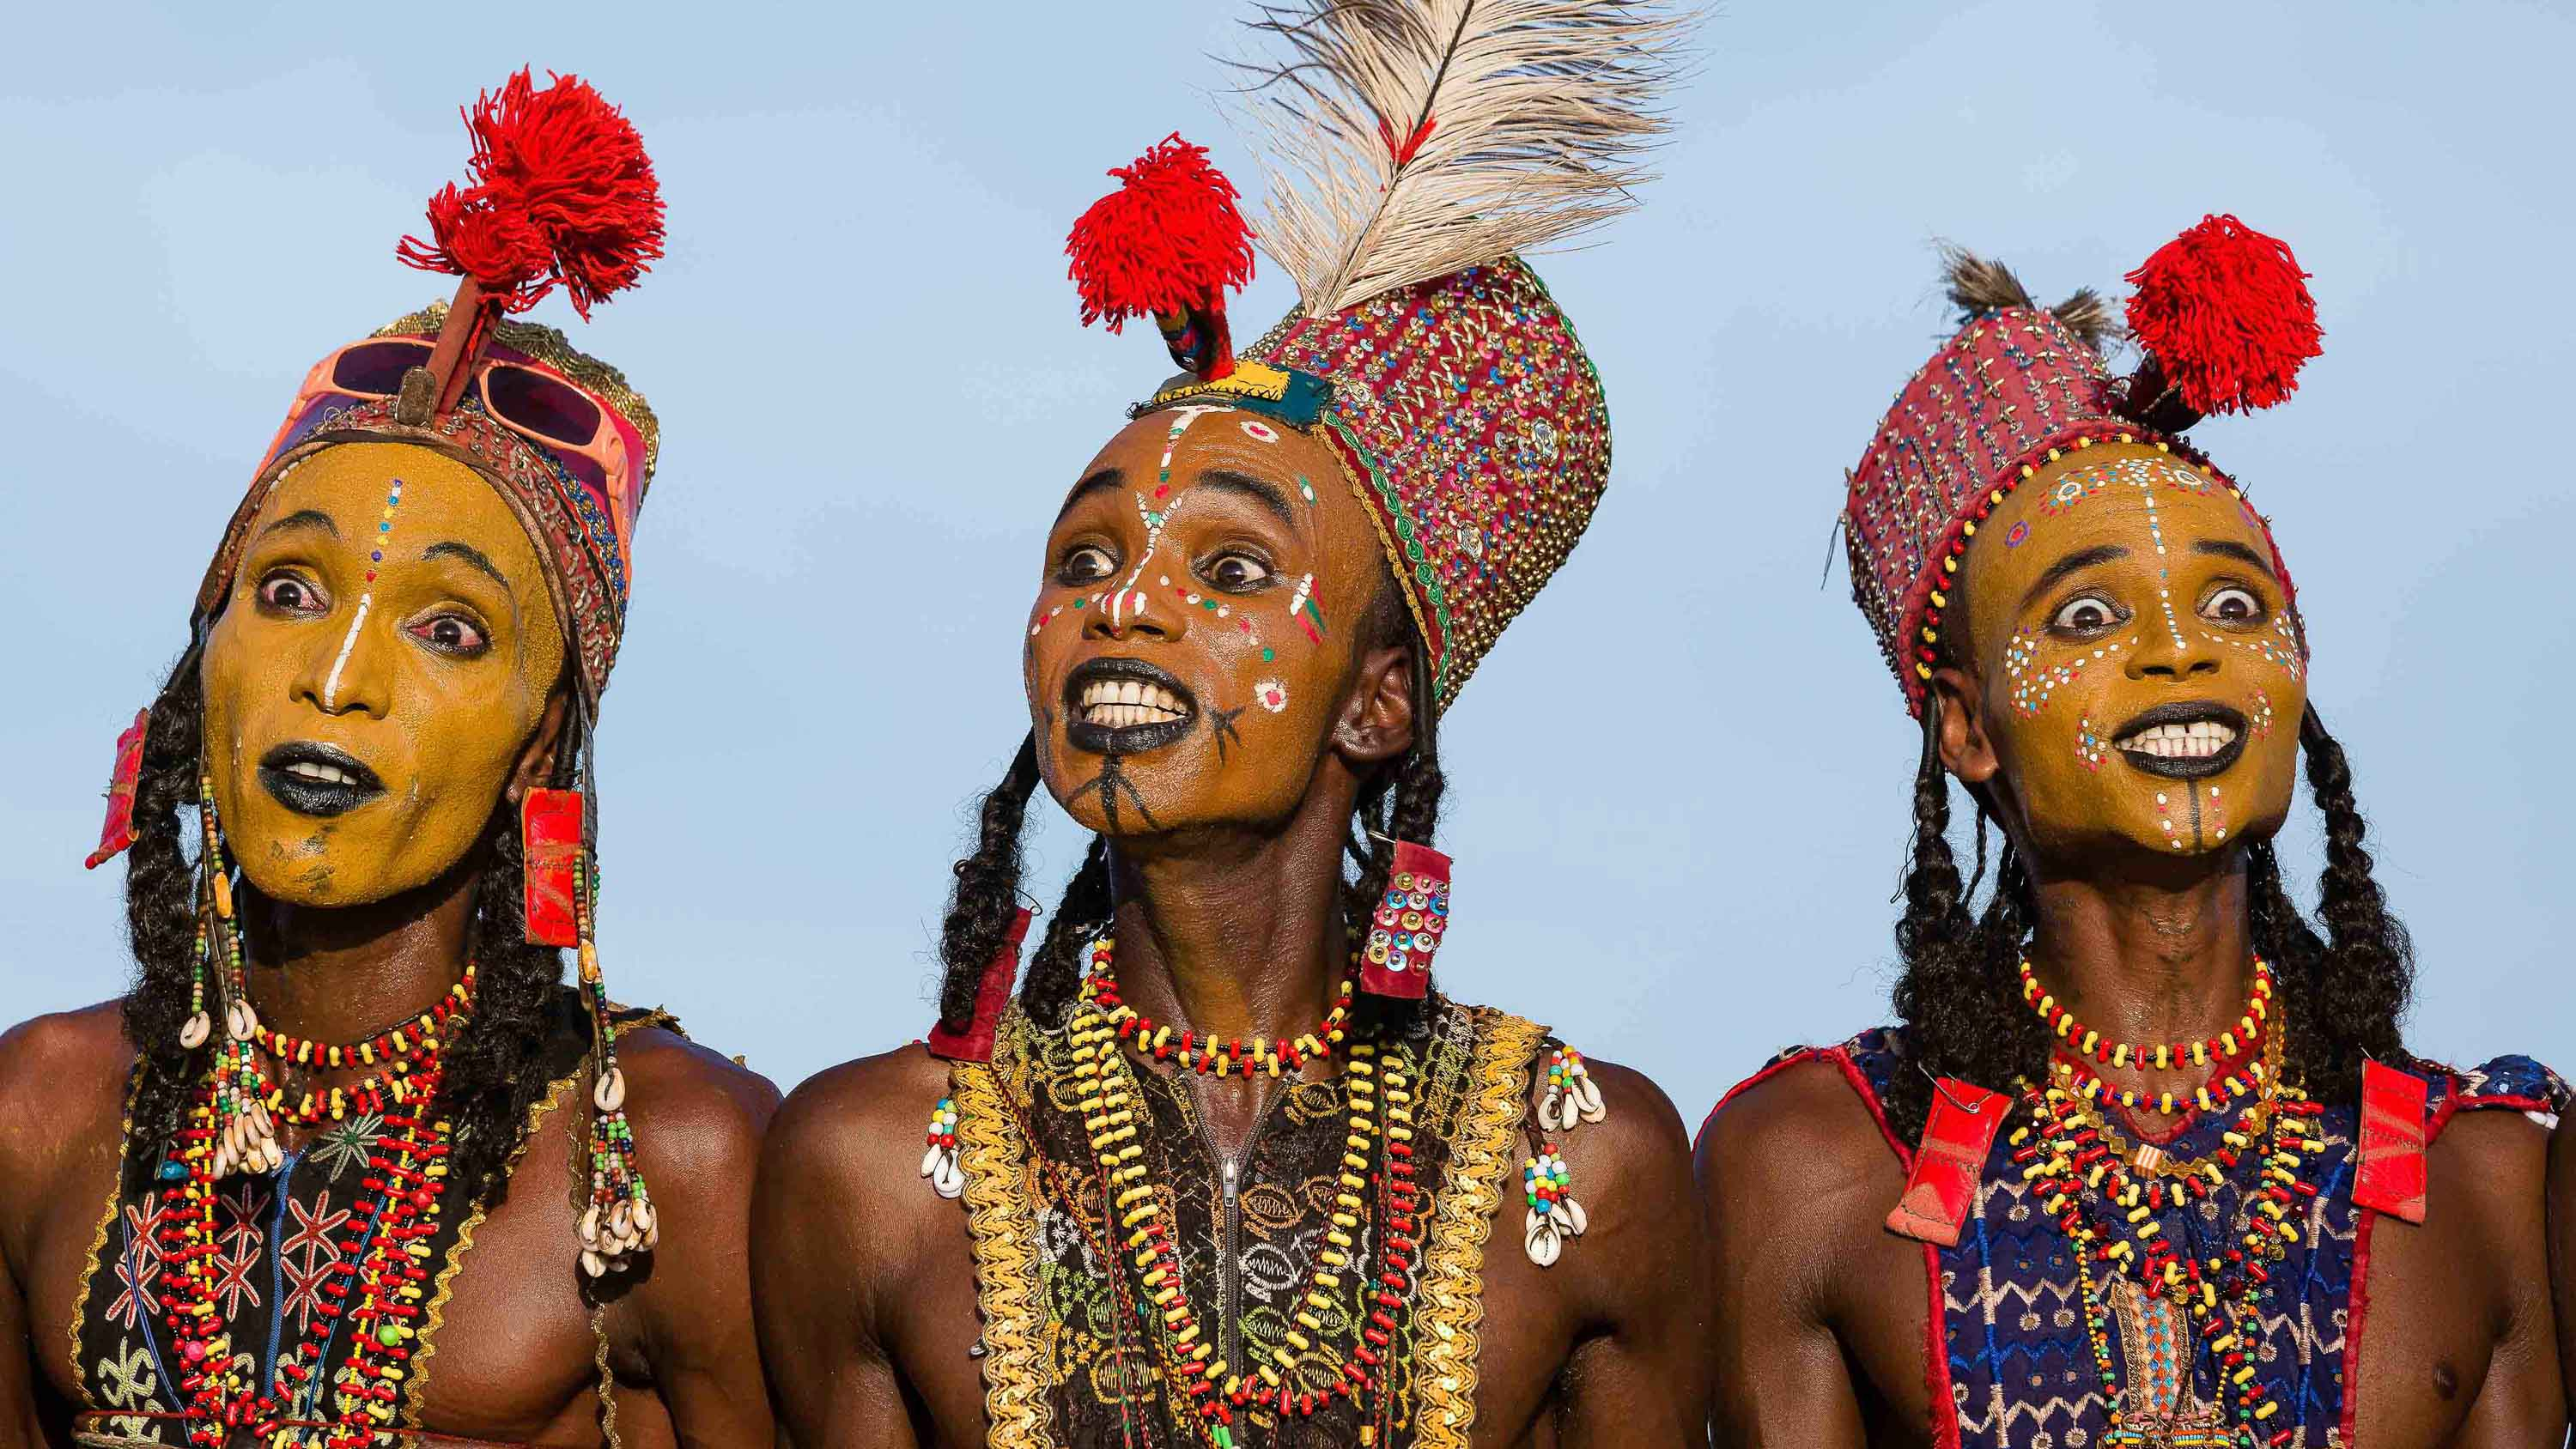 No Tinder in the desert: How Chad's Wodaabe nomads find love